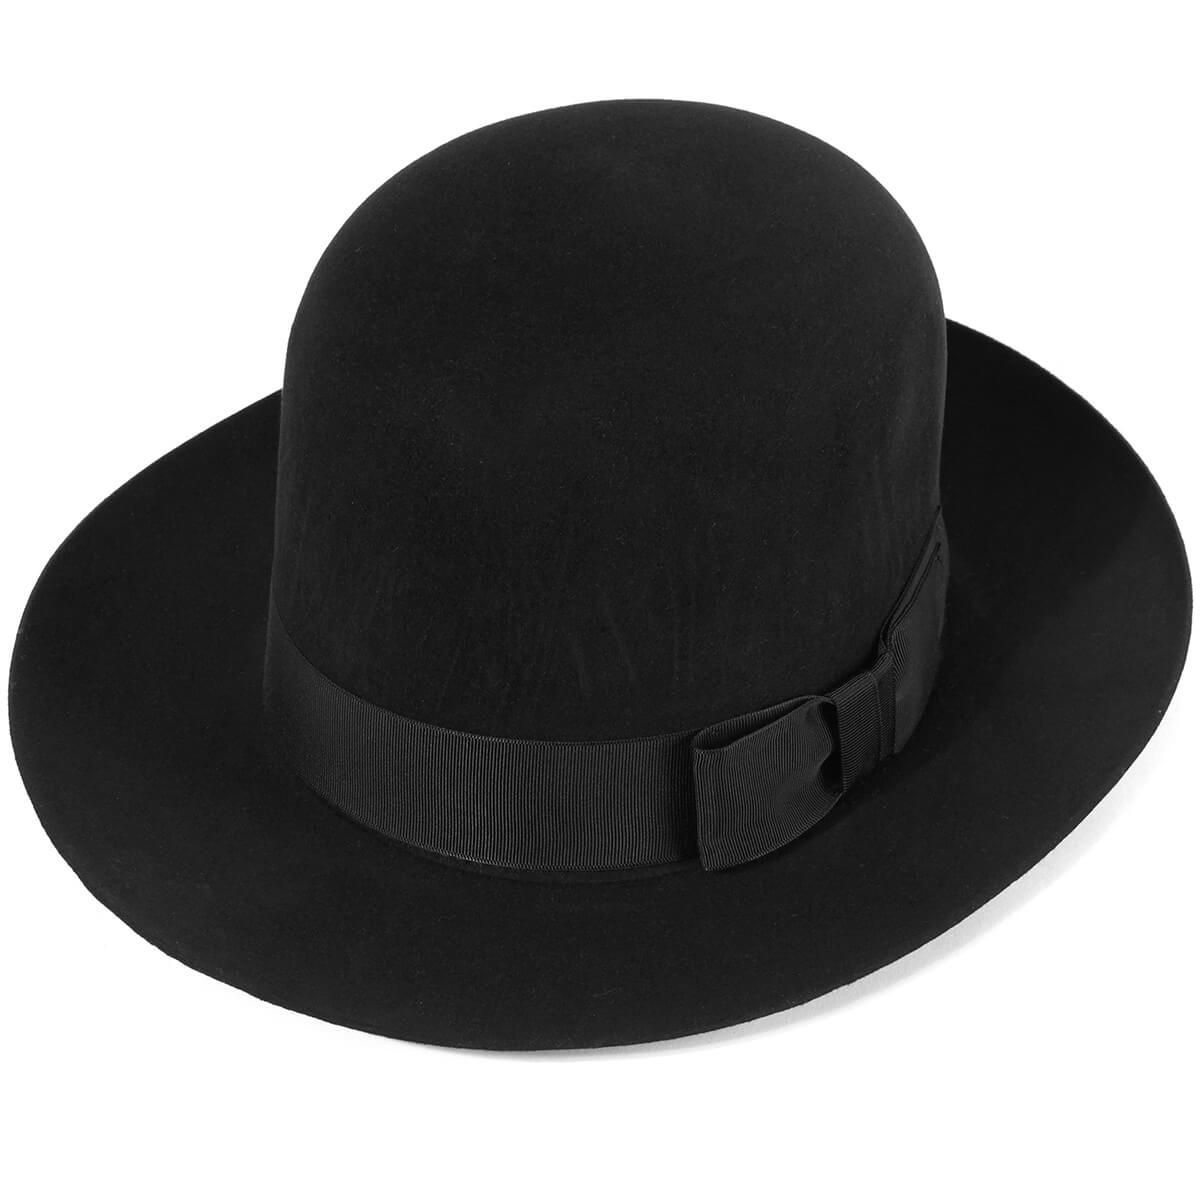 100/% Fur Felt The Poet Fedora Hat in Black by Christys/' of London UK Made